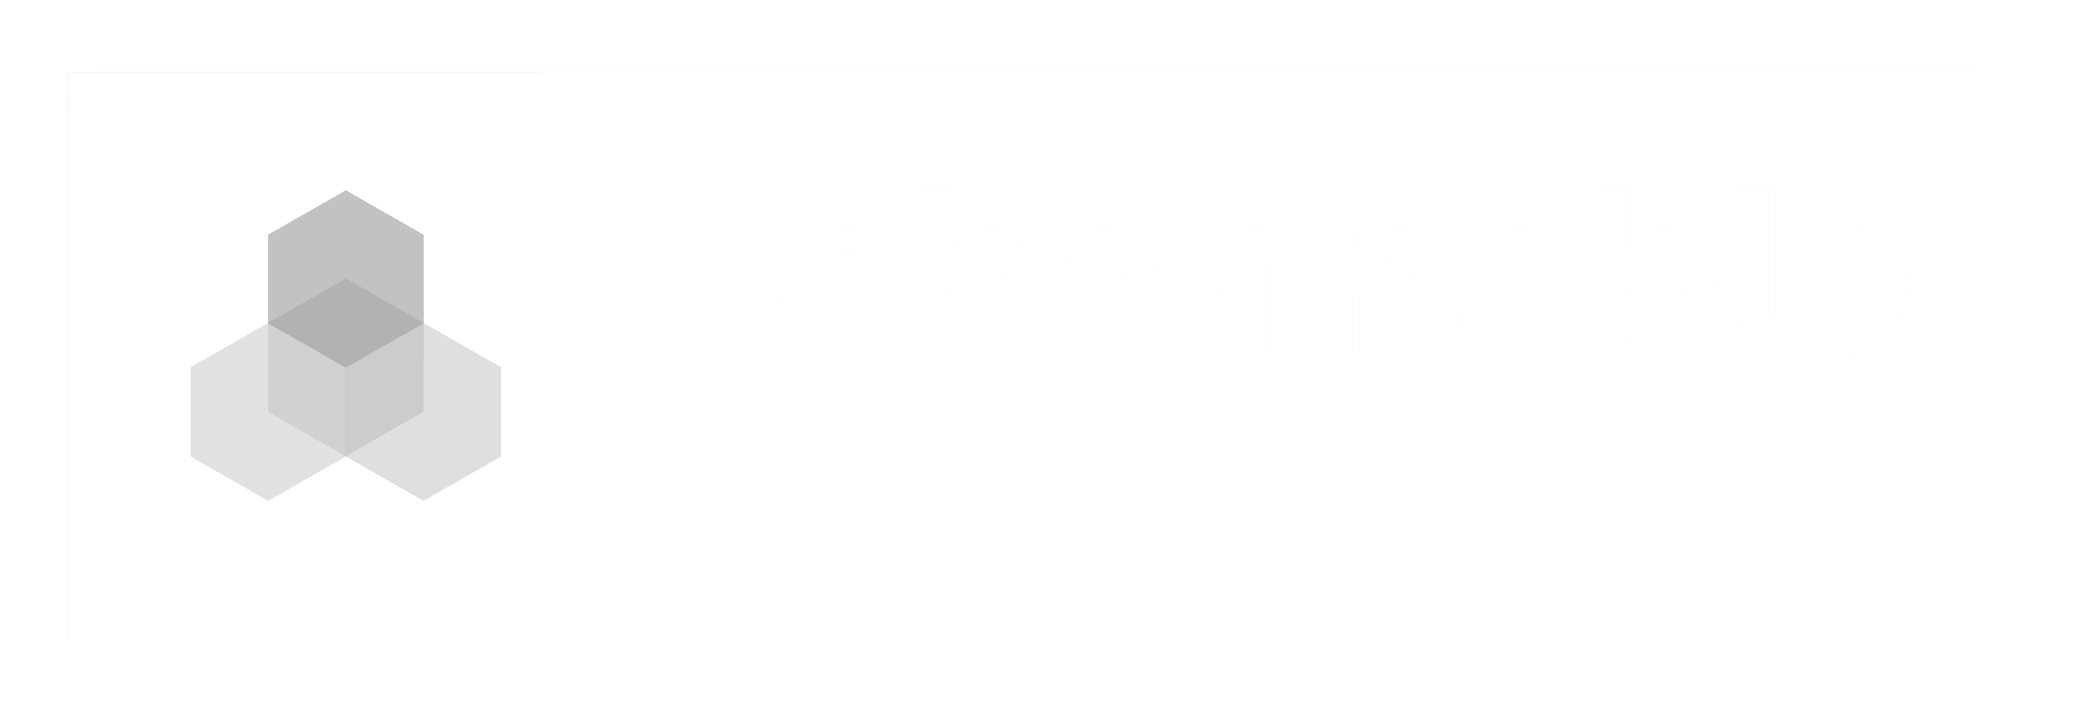 Channable Gold Partner (4x op rij)